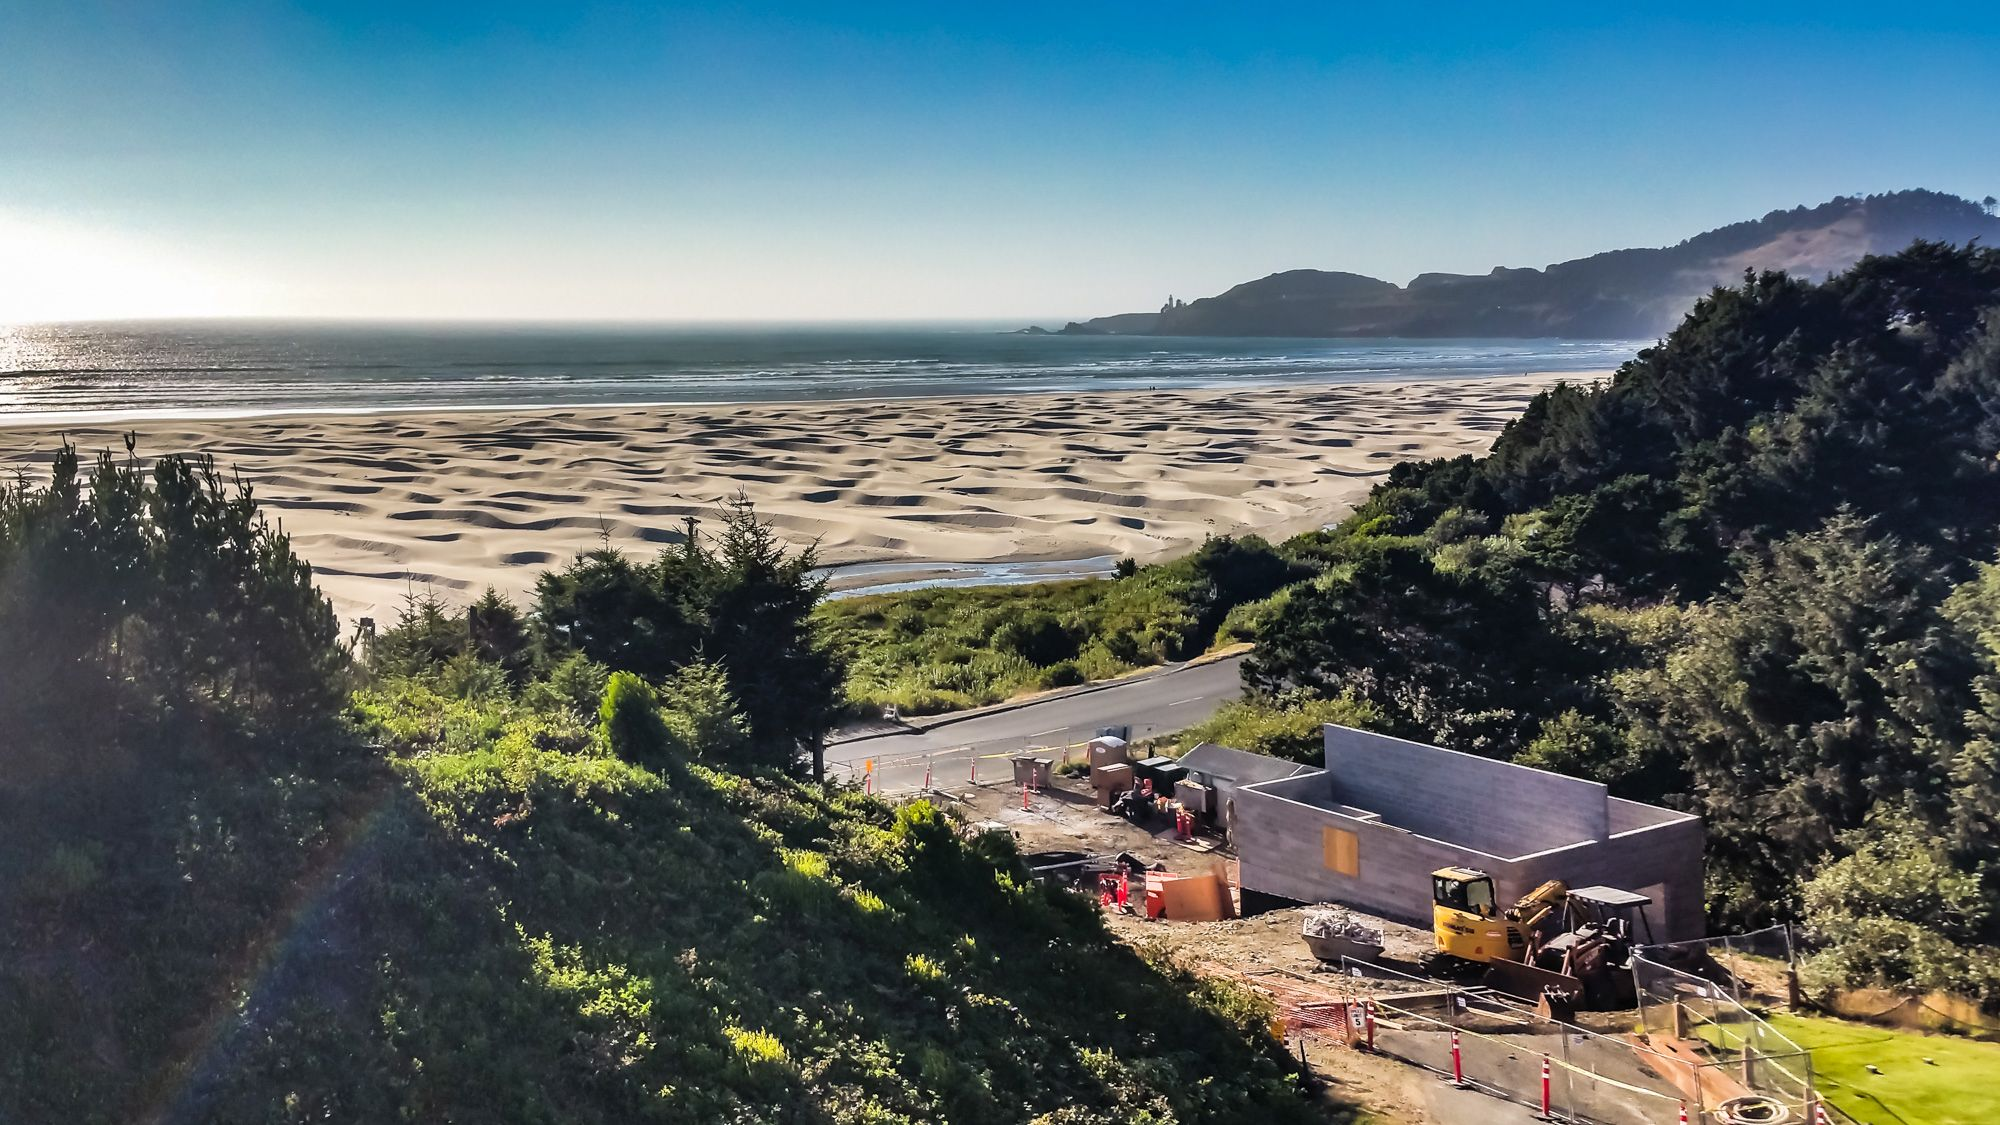 Hotel Review: Best Western Agate Beach Inn (Newport, Oregon)